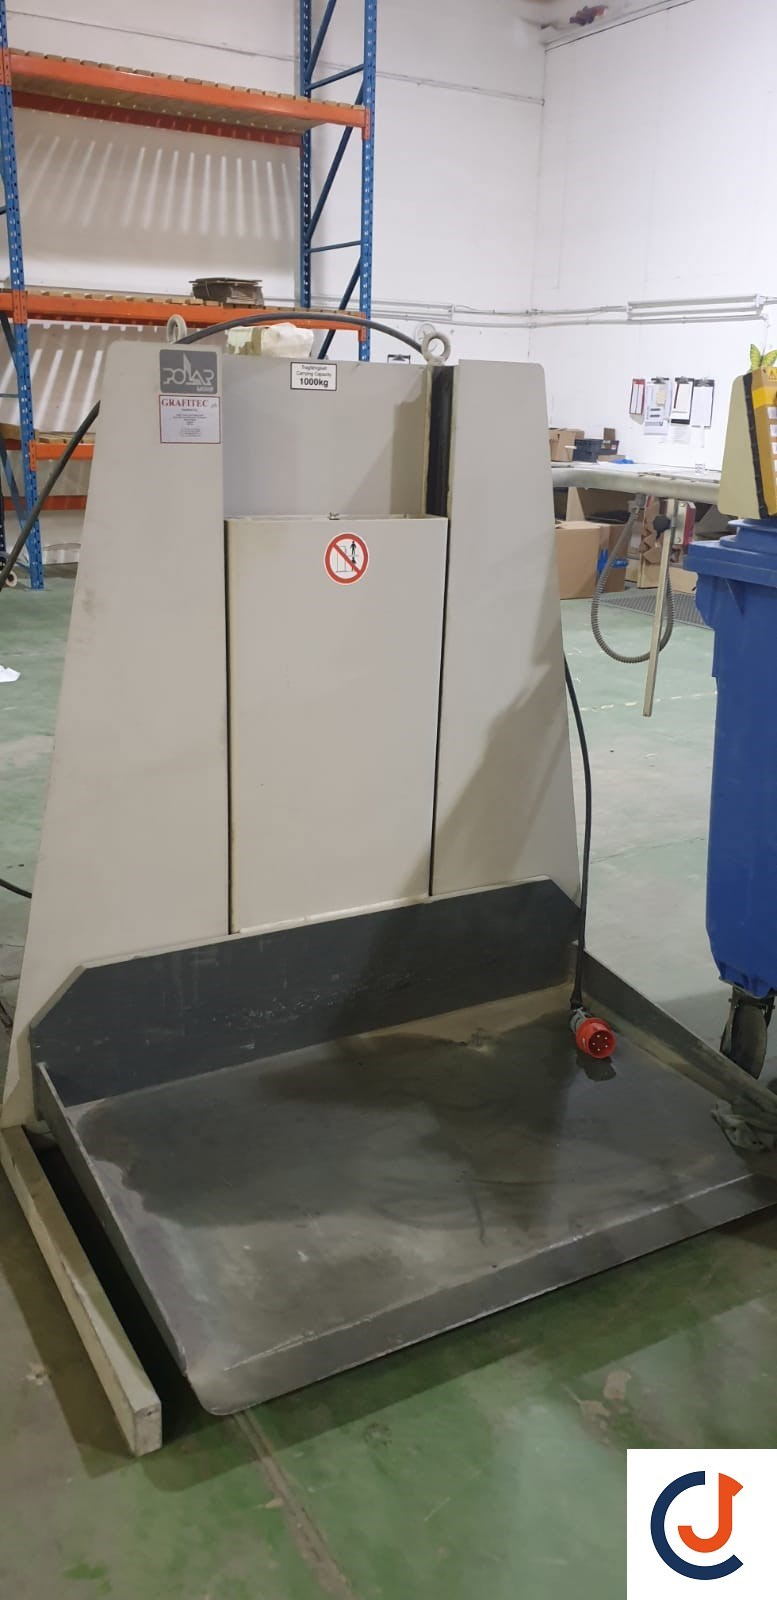 Polar LW1000-4 Paper Lift